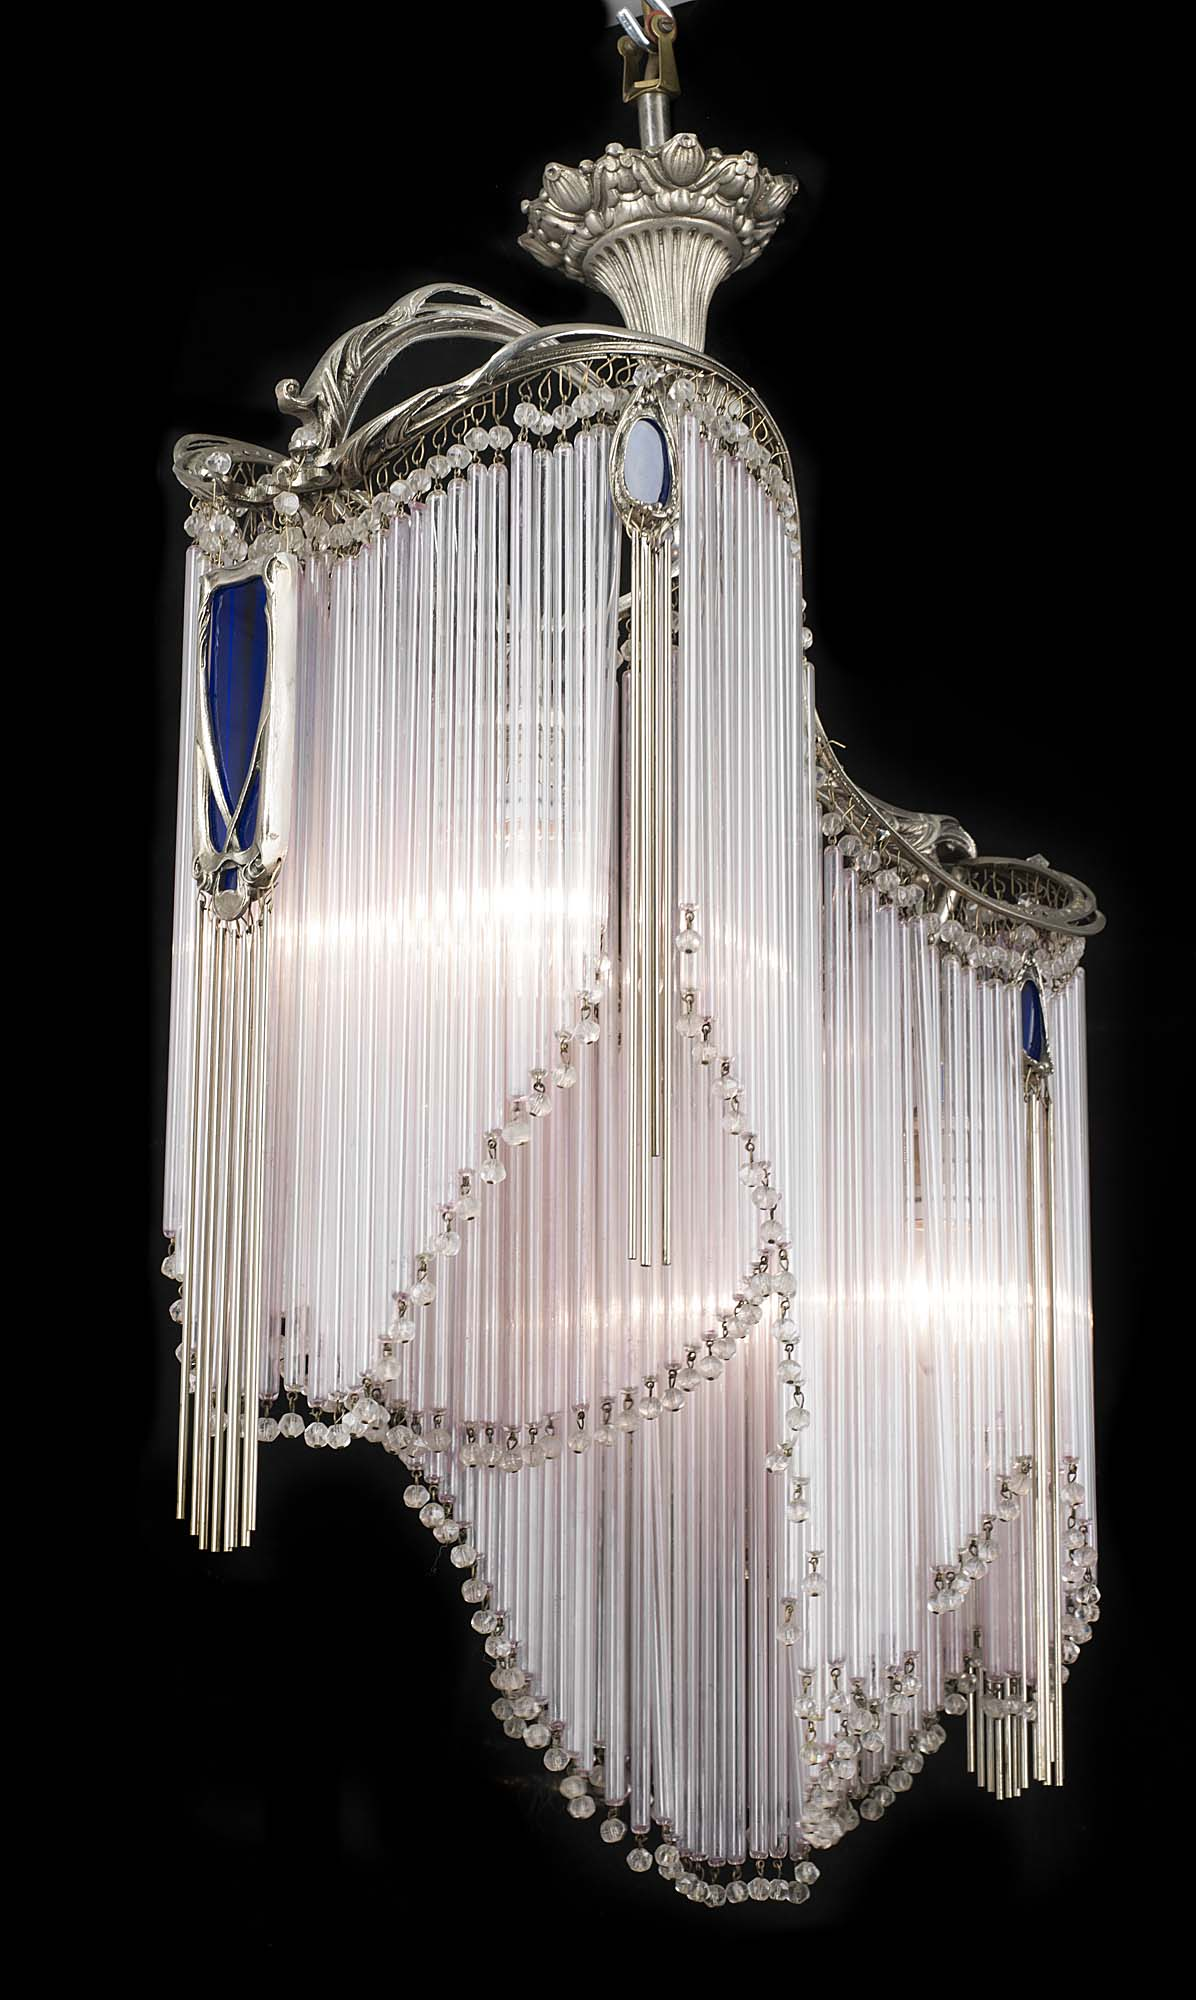 An Art Nouveau style glass and nickel plated ceiling light